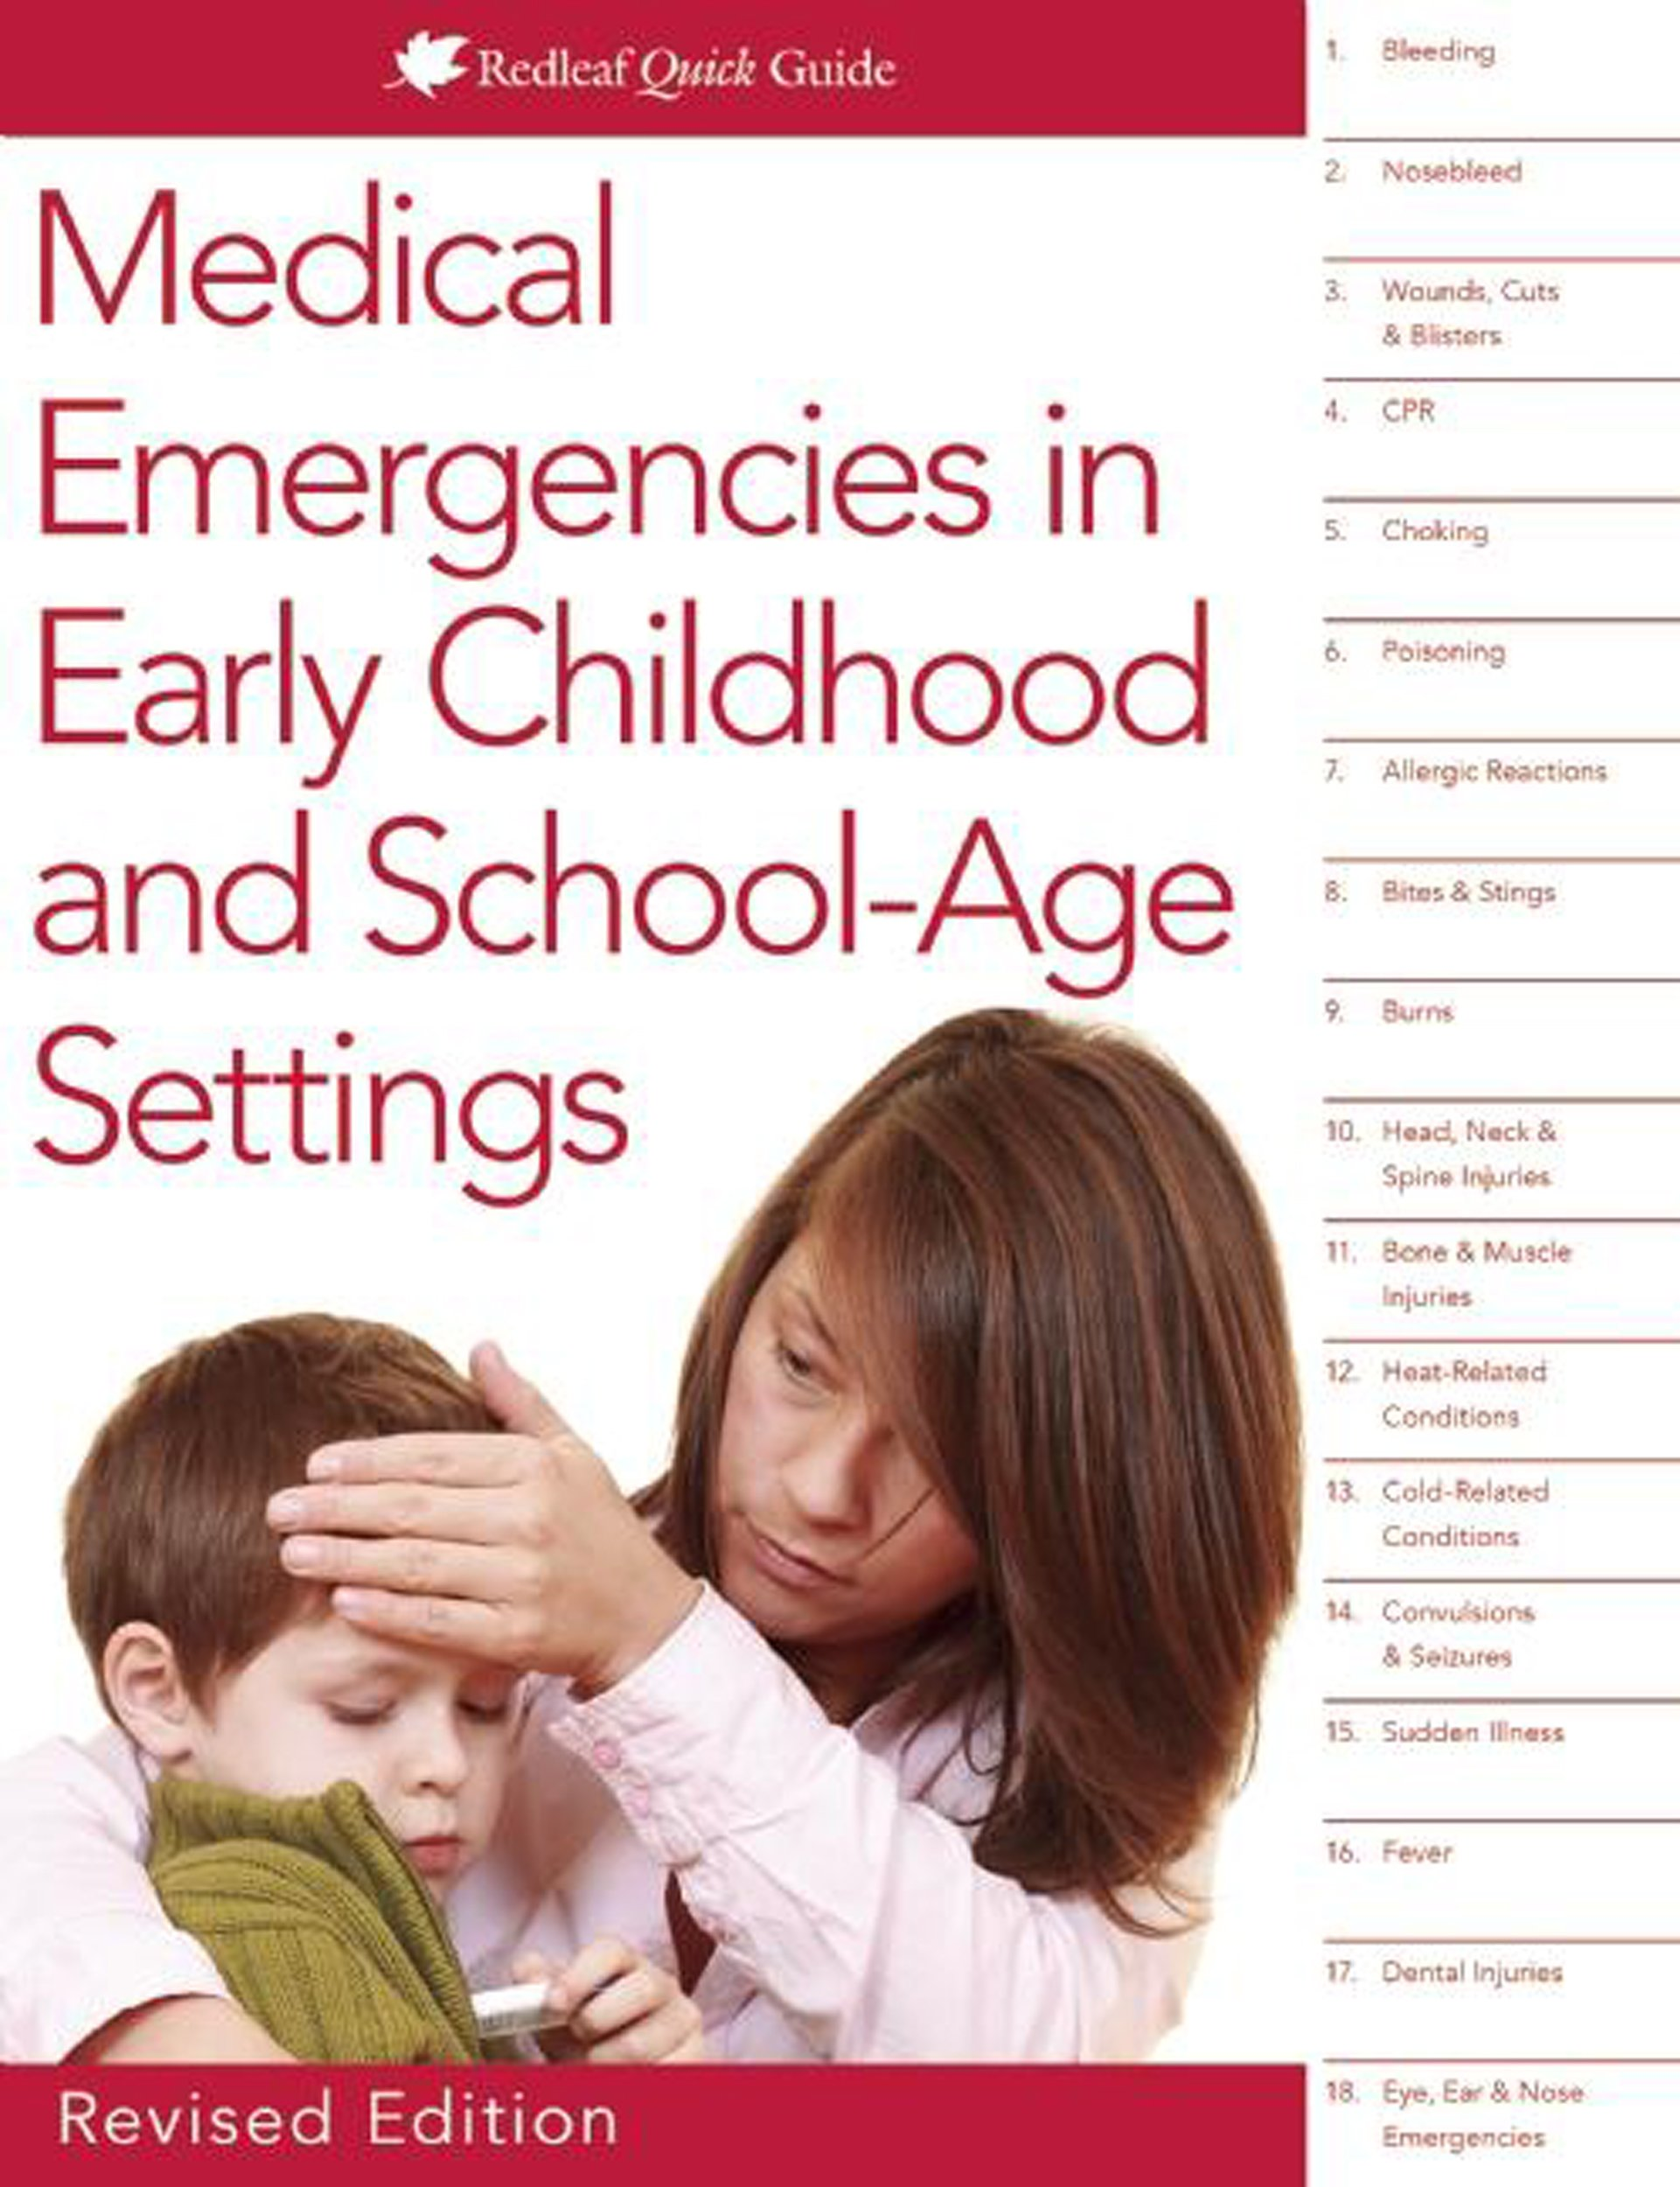 Medical Emergencies in Early Childhood and School-Age Settings (Readleaf Quick Guide) Text fb2 ebook